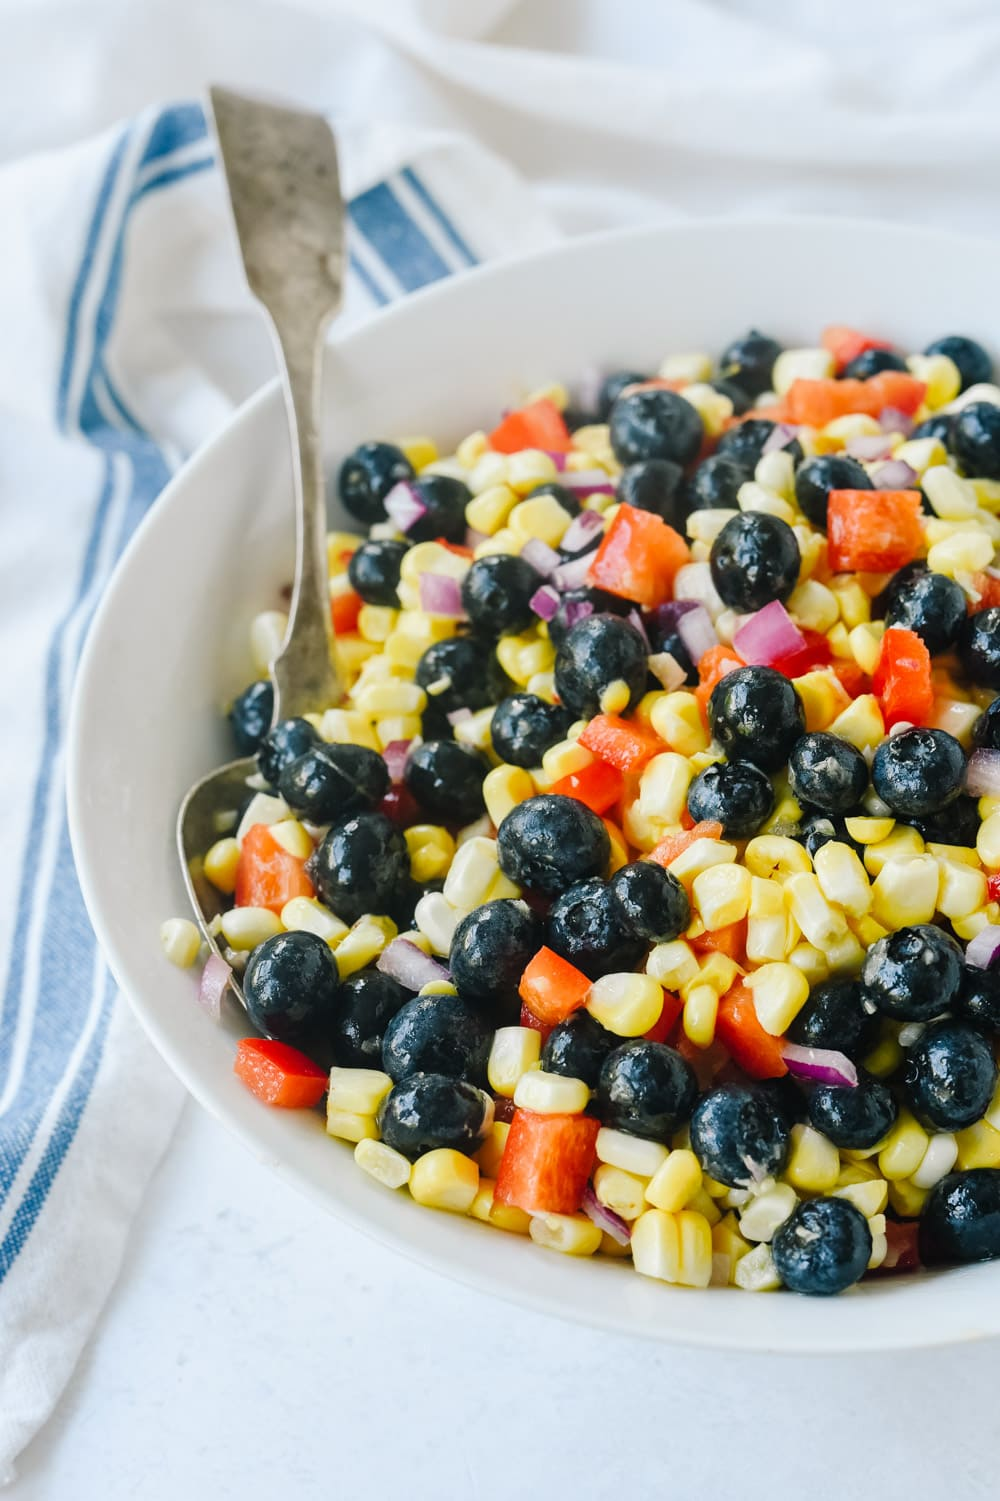 Blueberry Corn Salad with a spoon in it